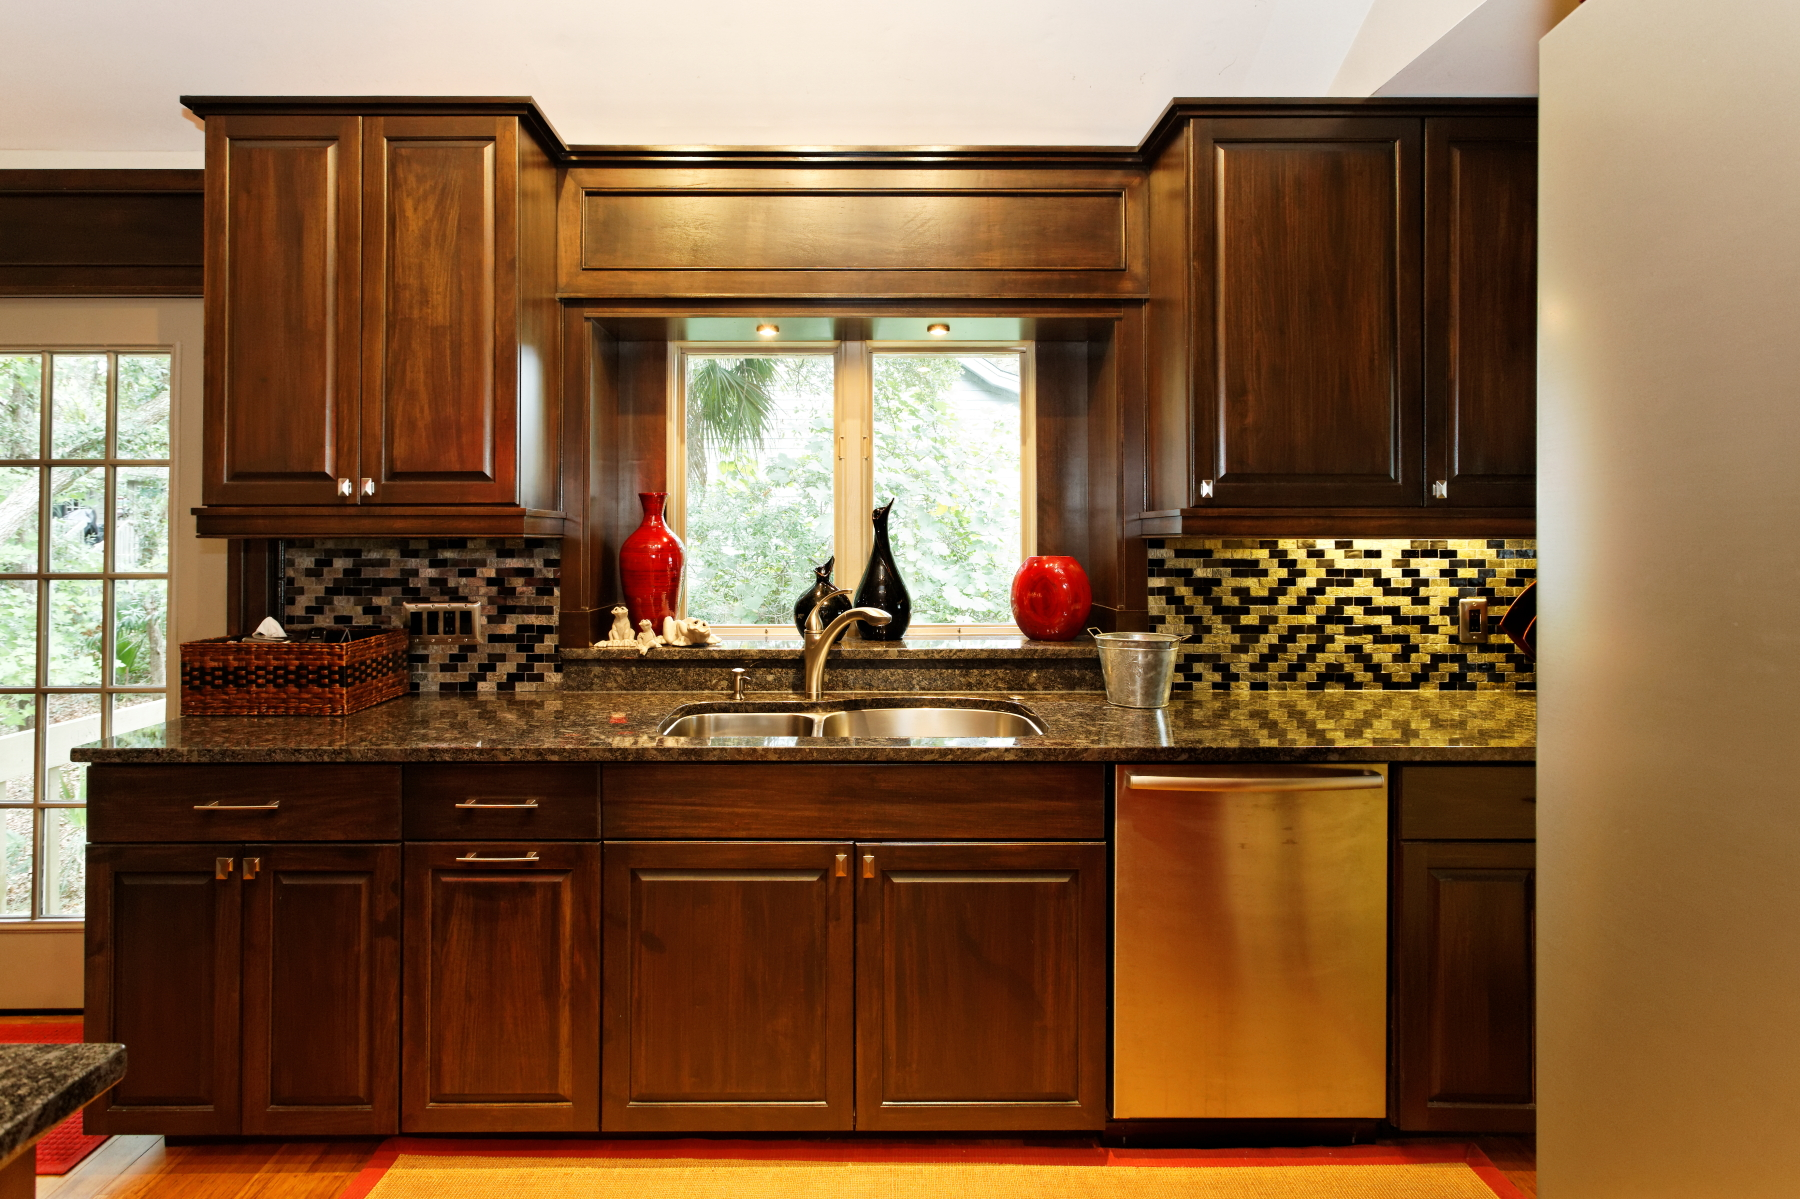 Houzz Photos Alice 3 - Copy.jpg